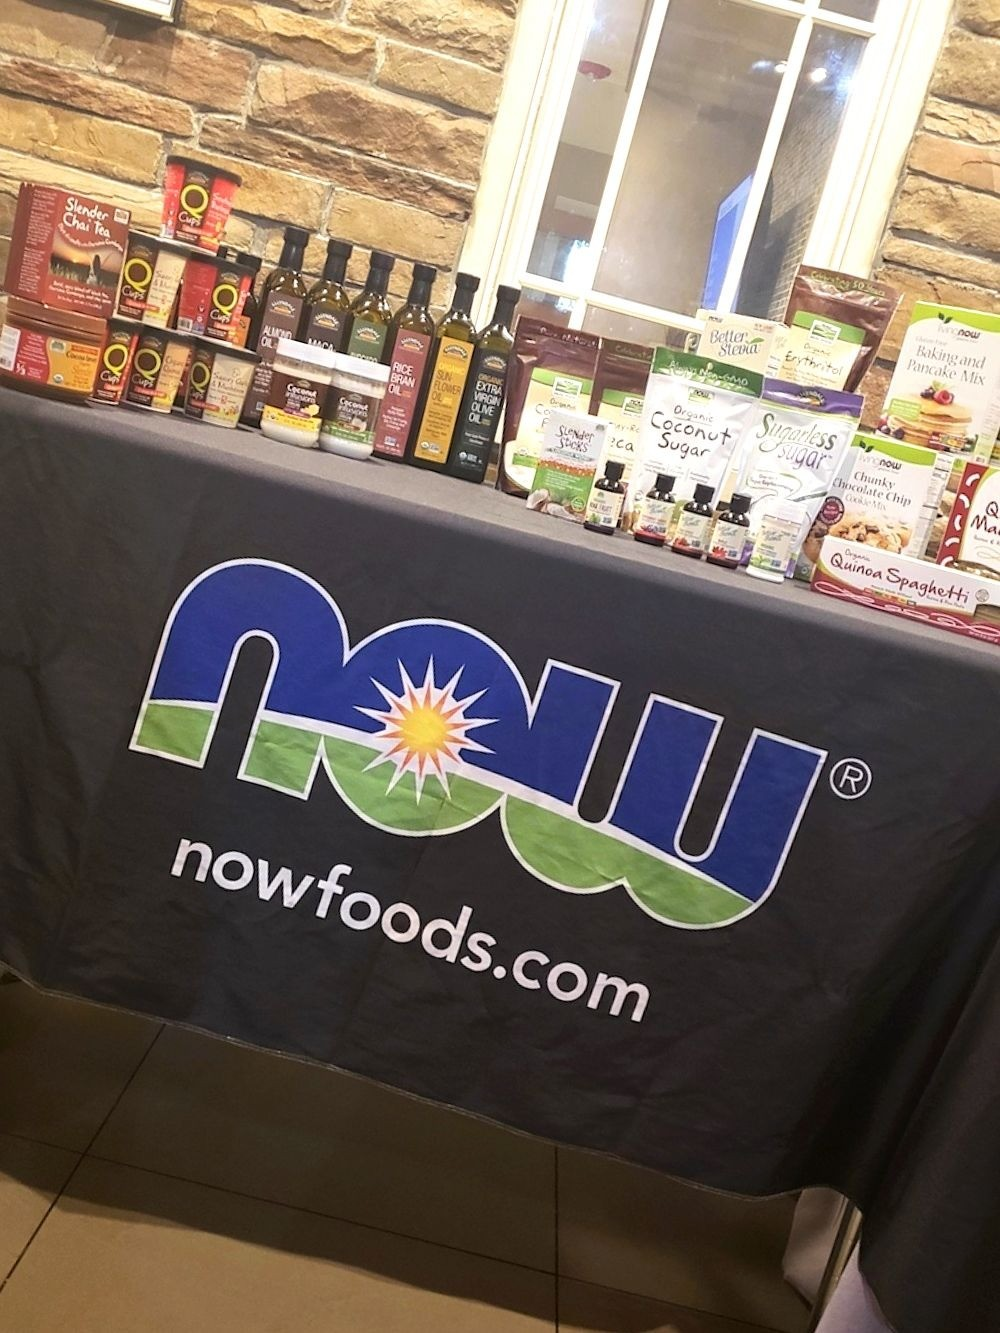 NOW Foods brand natural foods and products